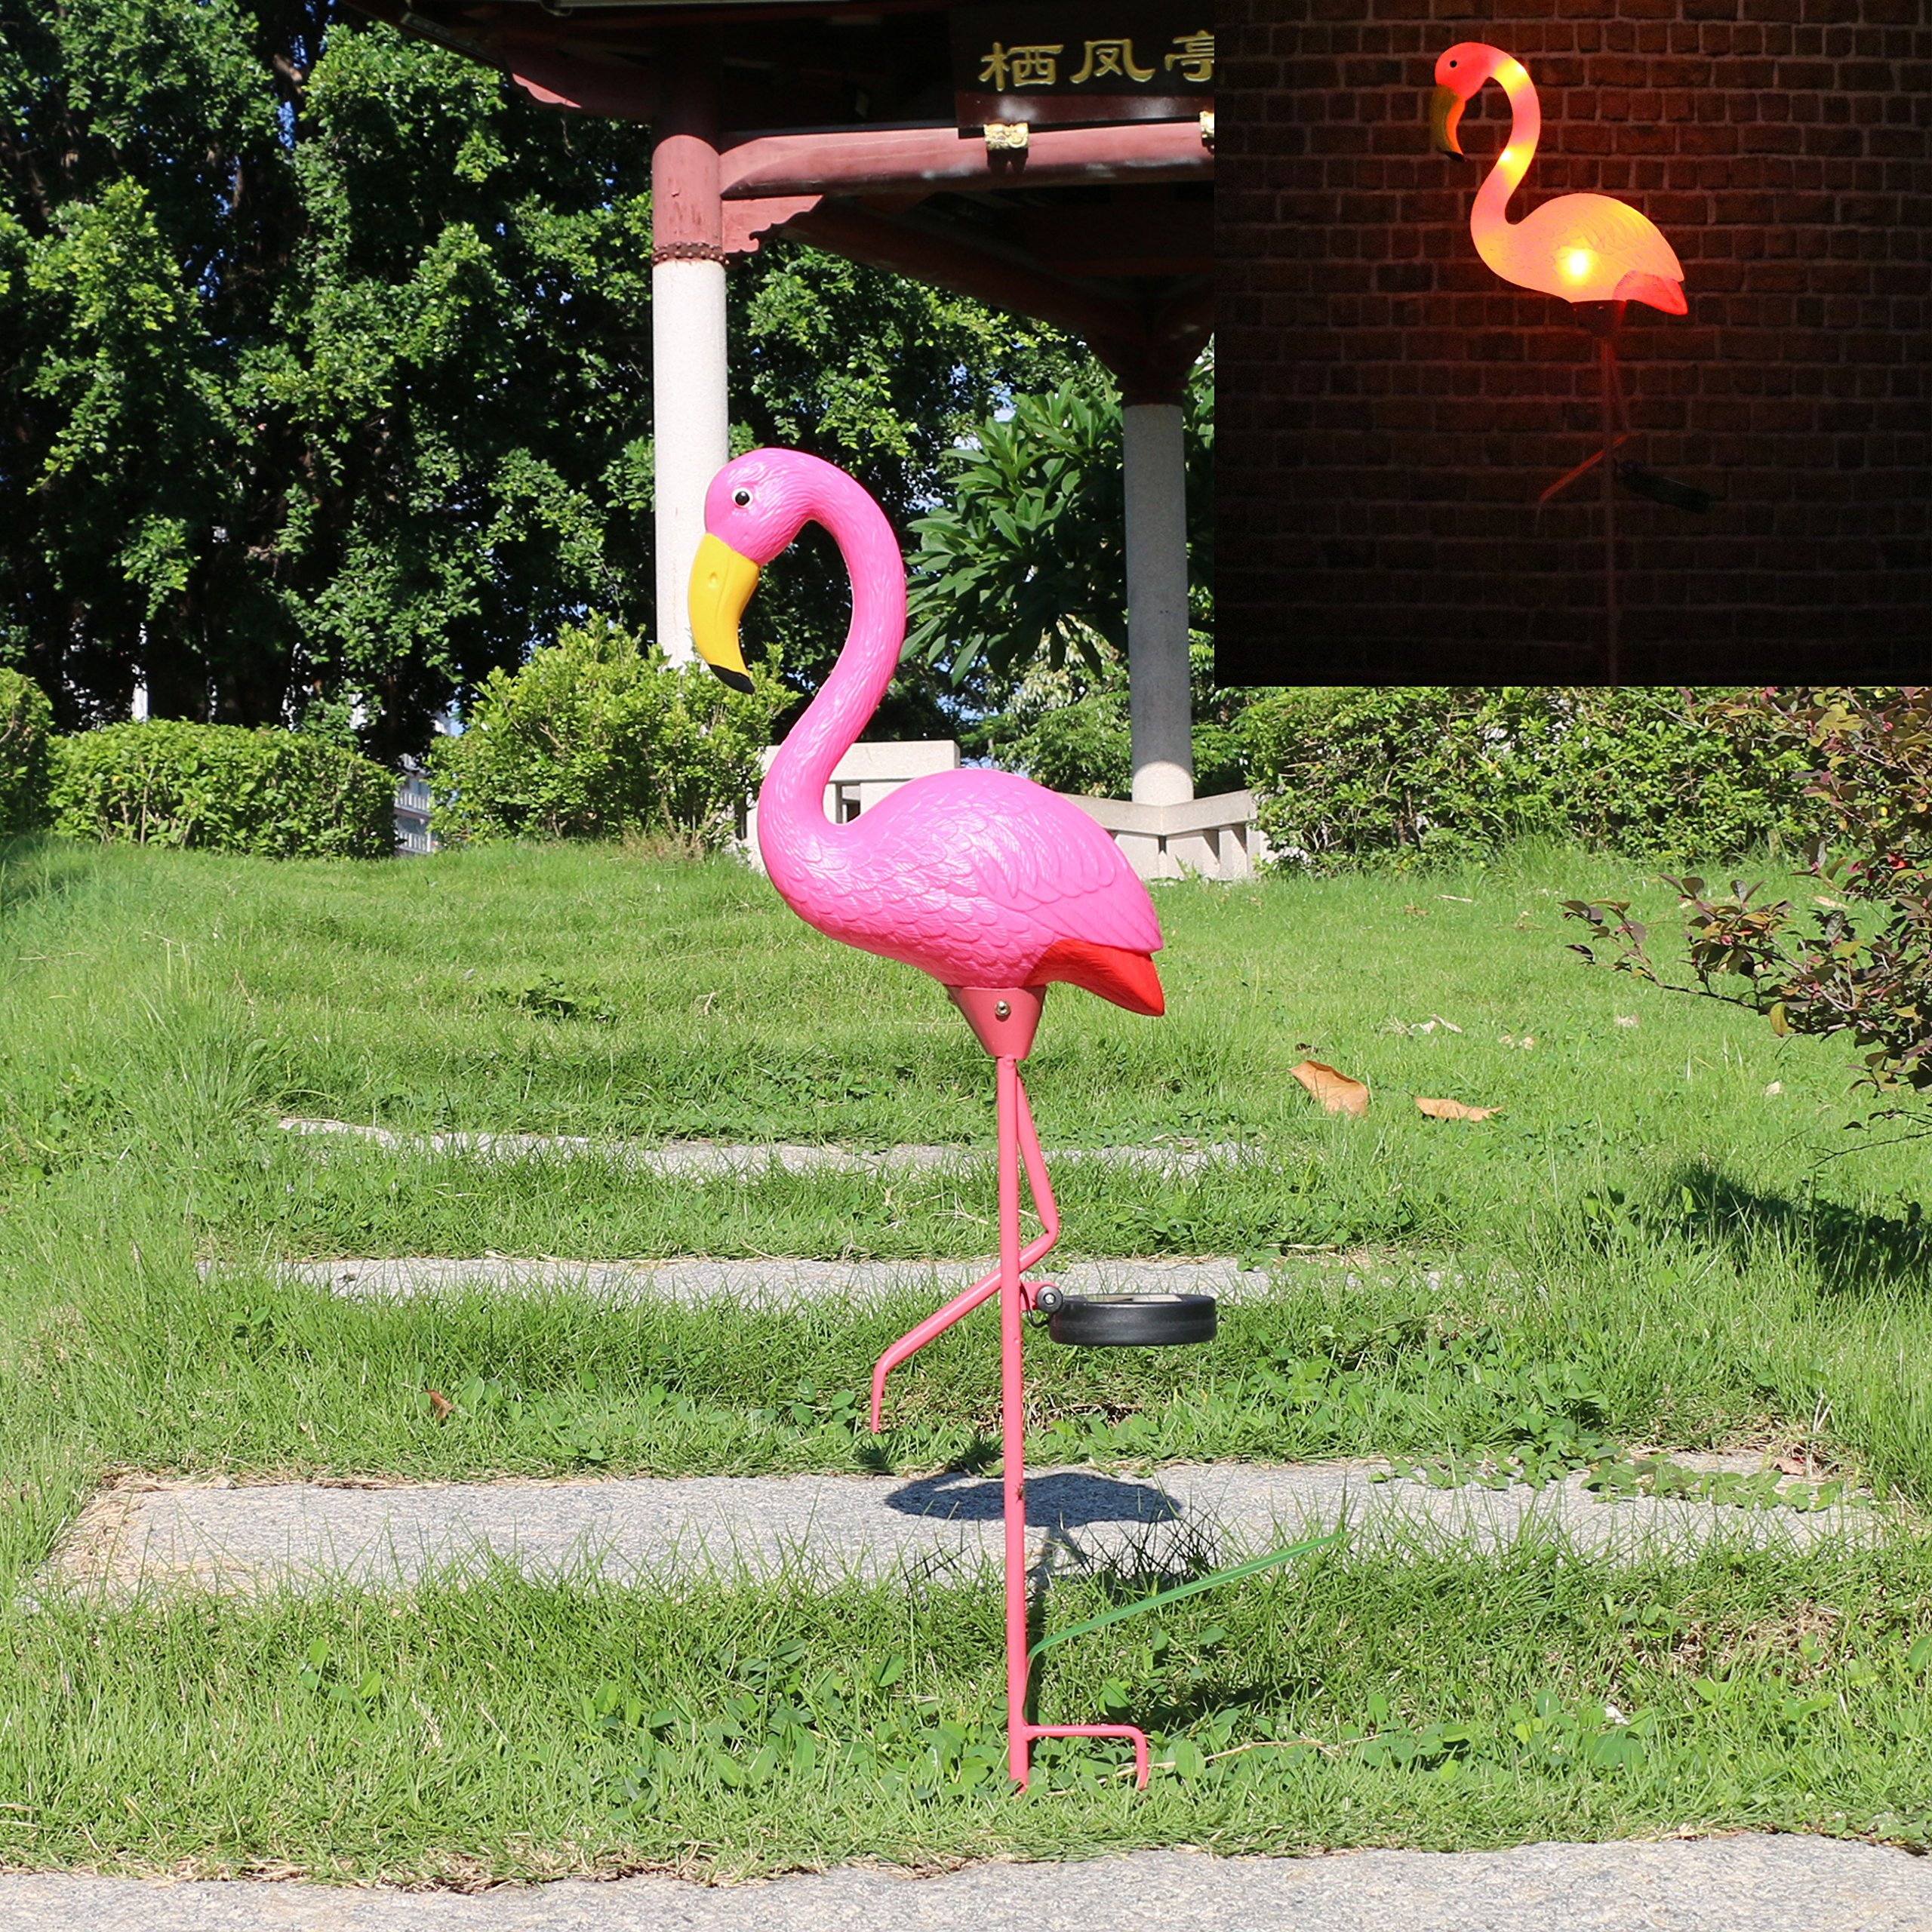 W-DIAN Solar Lights, For Outdoor Pathway metal yard art plastic metals Pink FLAMINGO Patio, Path, Lawn, Garden, Yard Decor,Outside Post Lighting Lamps Original Featherstone Flamingo's by W-DIAN